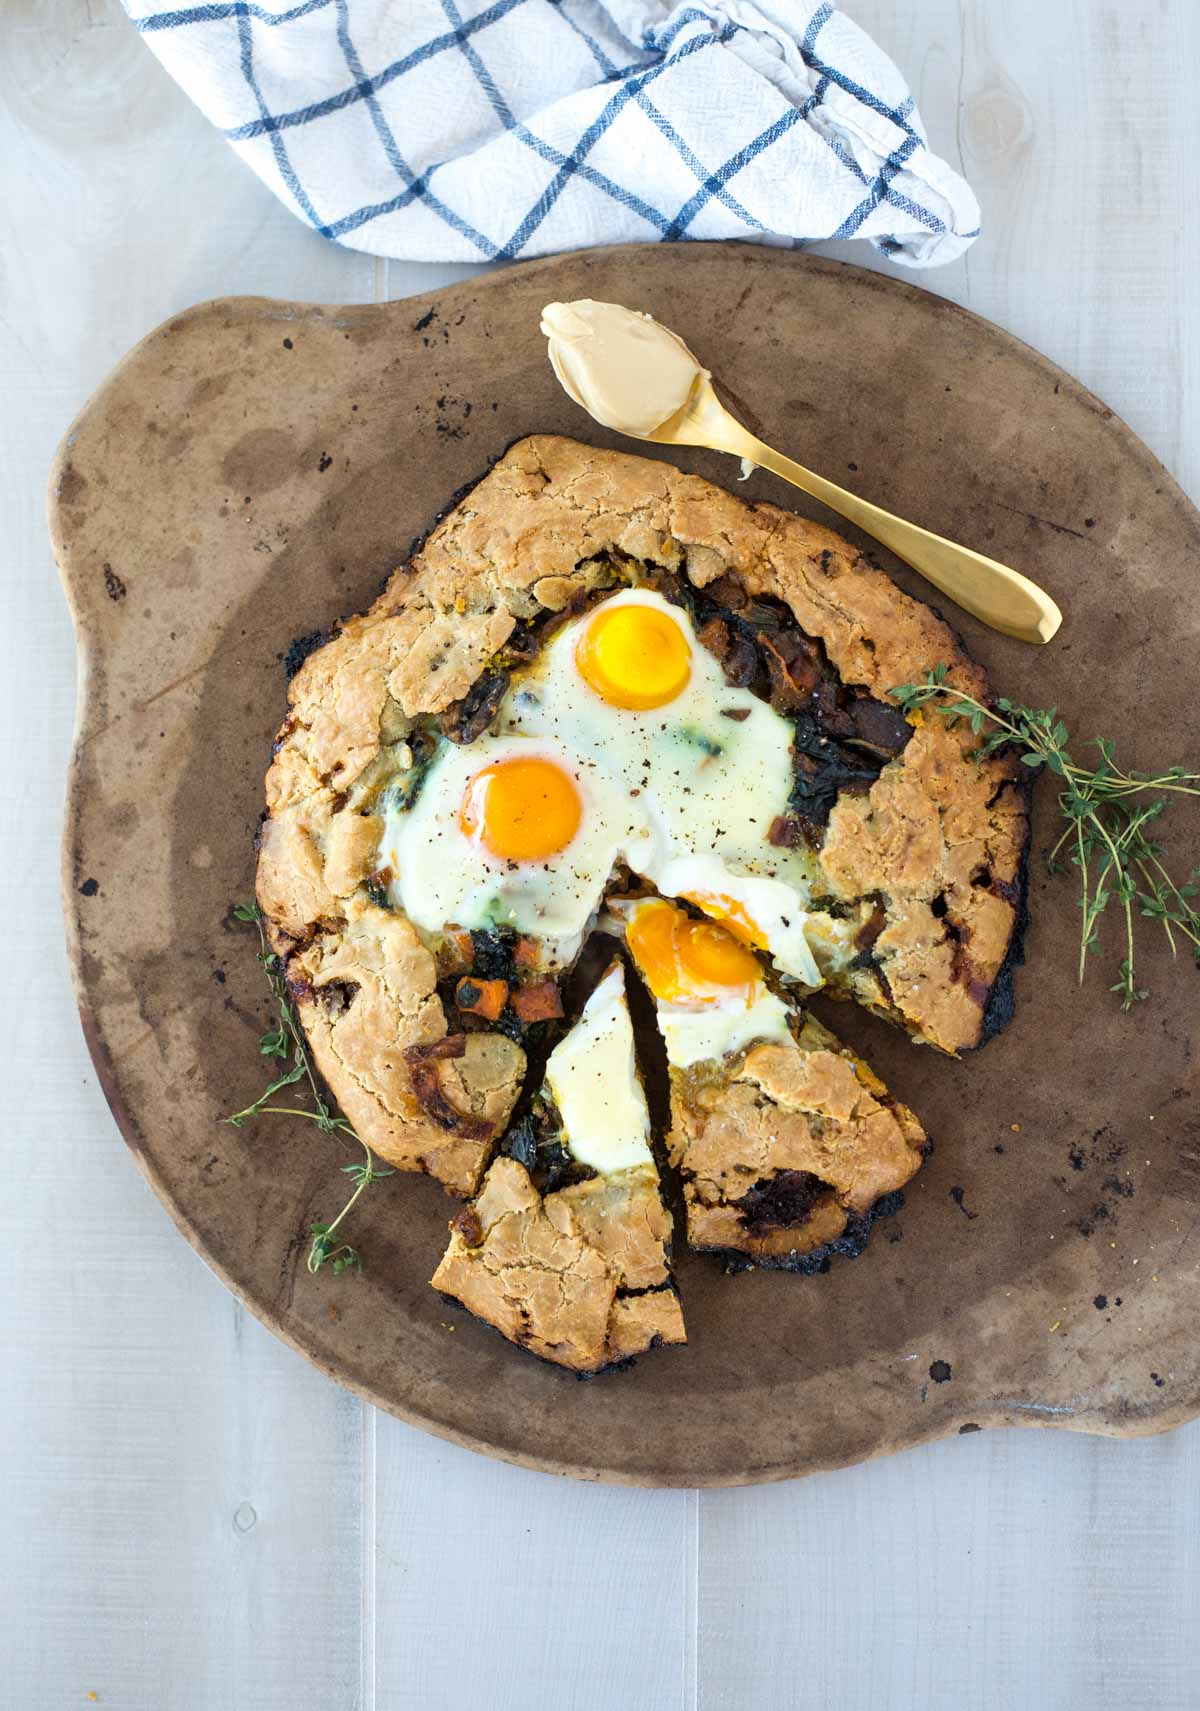 I warmly welcome you to the best kept brunch secret in town, this breakfast galette holding a delicious secret.